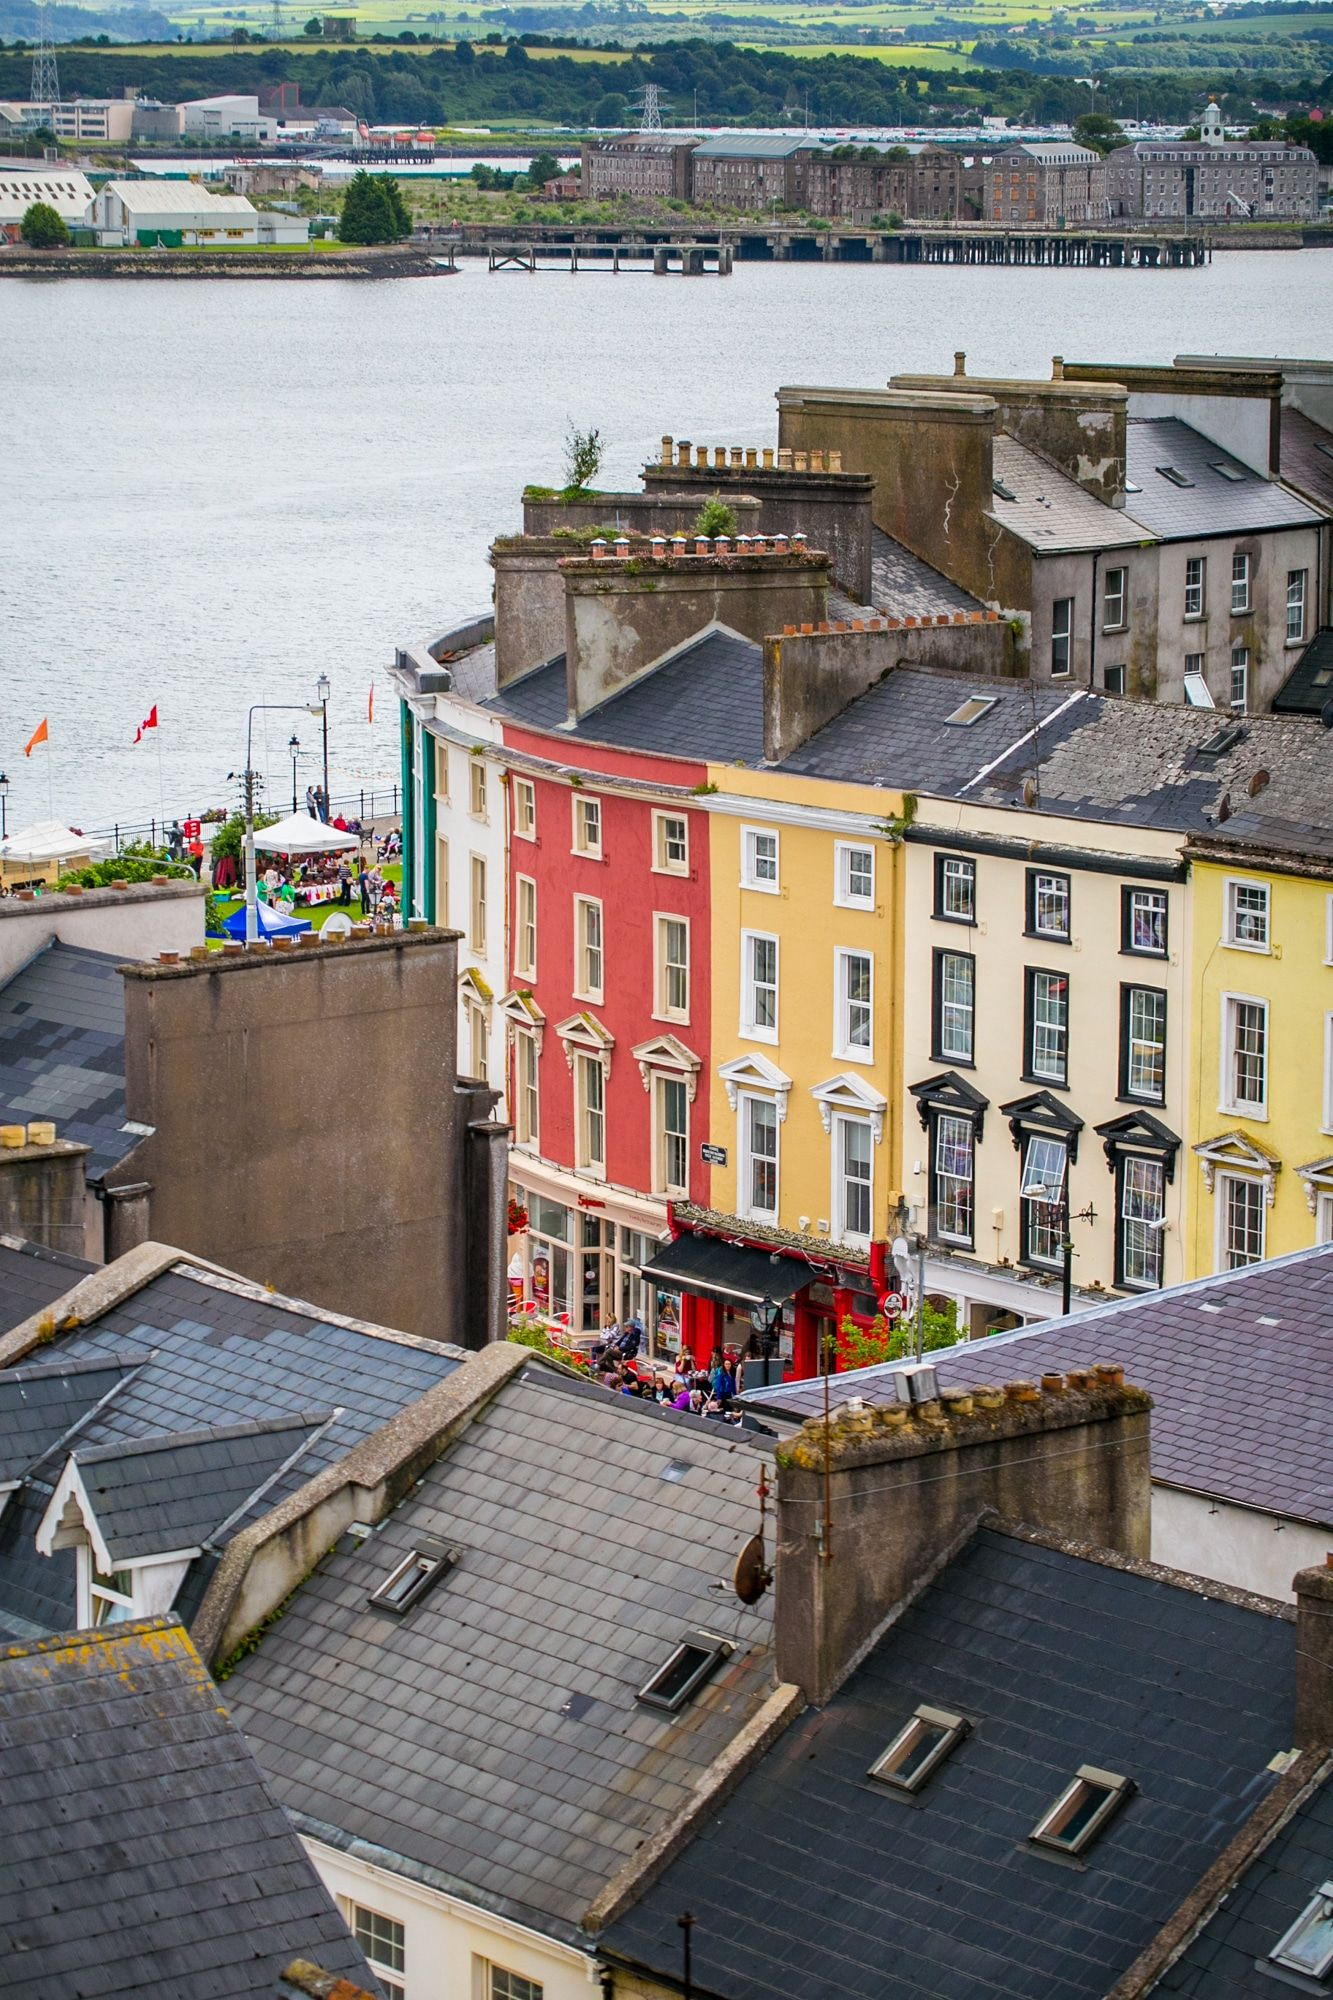 Cobh County Cork Ireland Explore Cork County S Charming Coastal Town Cobh The Last Port For The Titanic Wh County Cork Ireland County Cork Cork Ireland